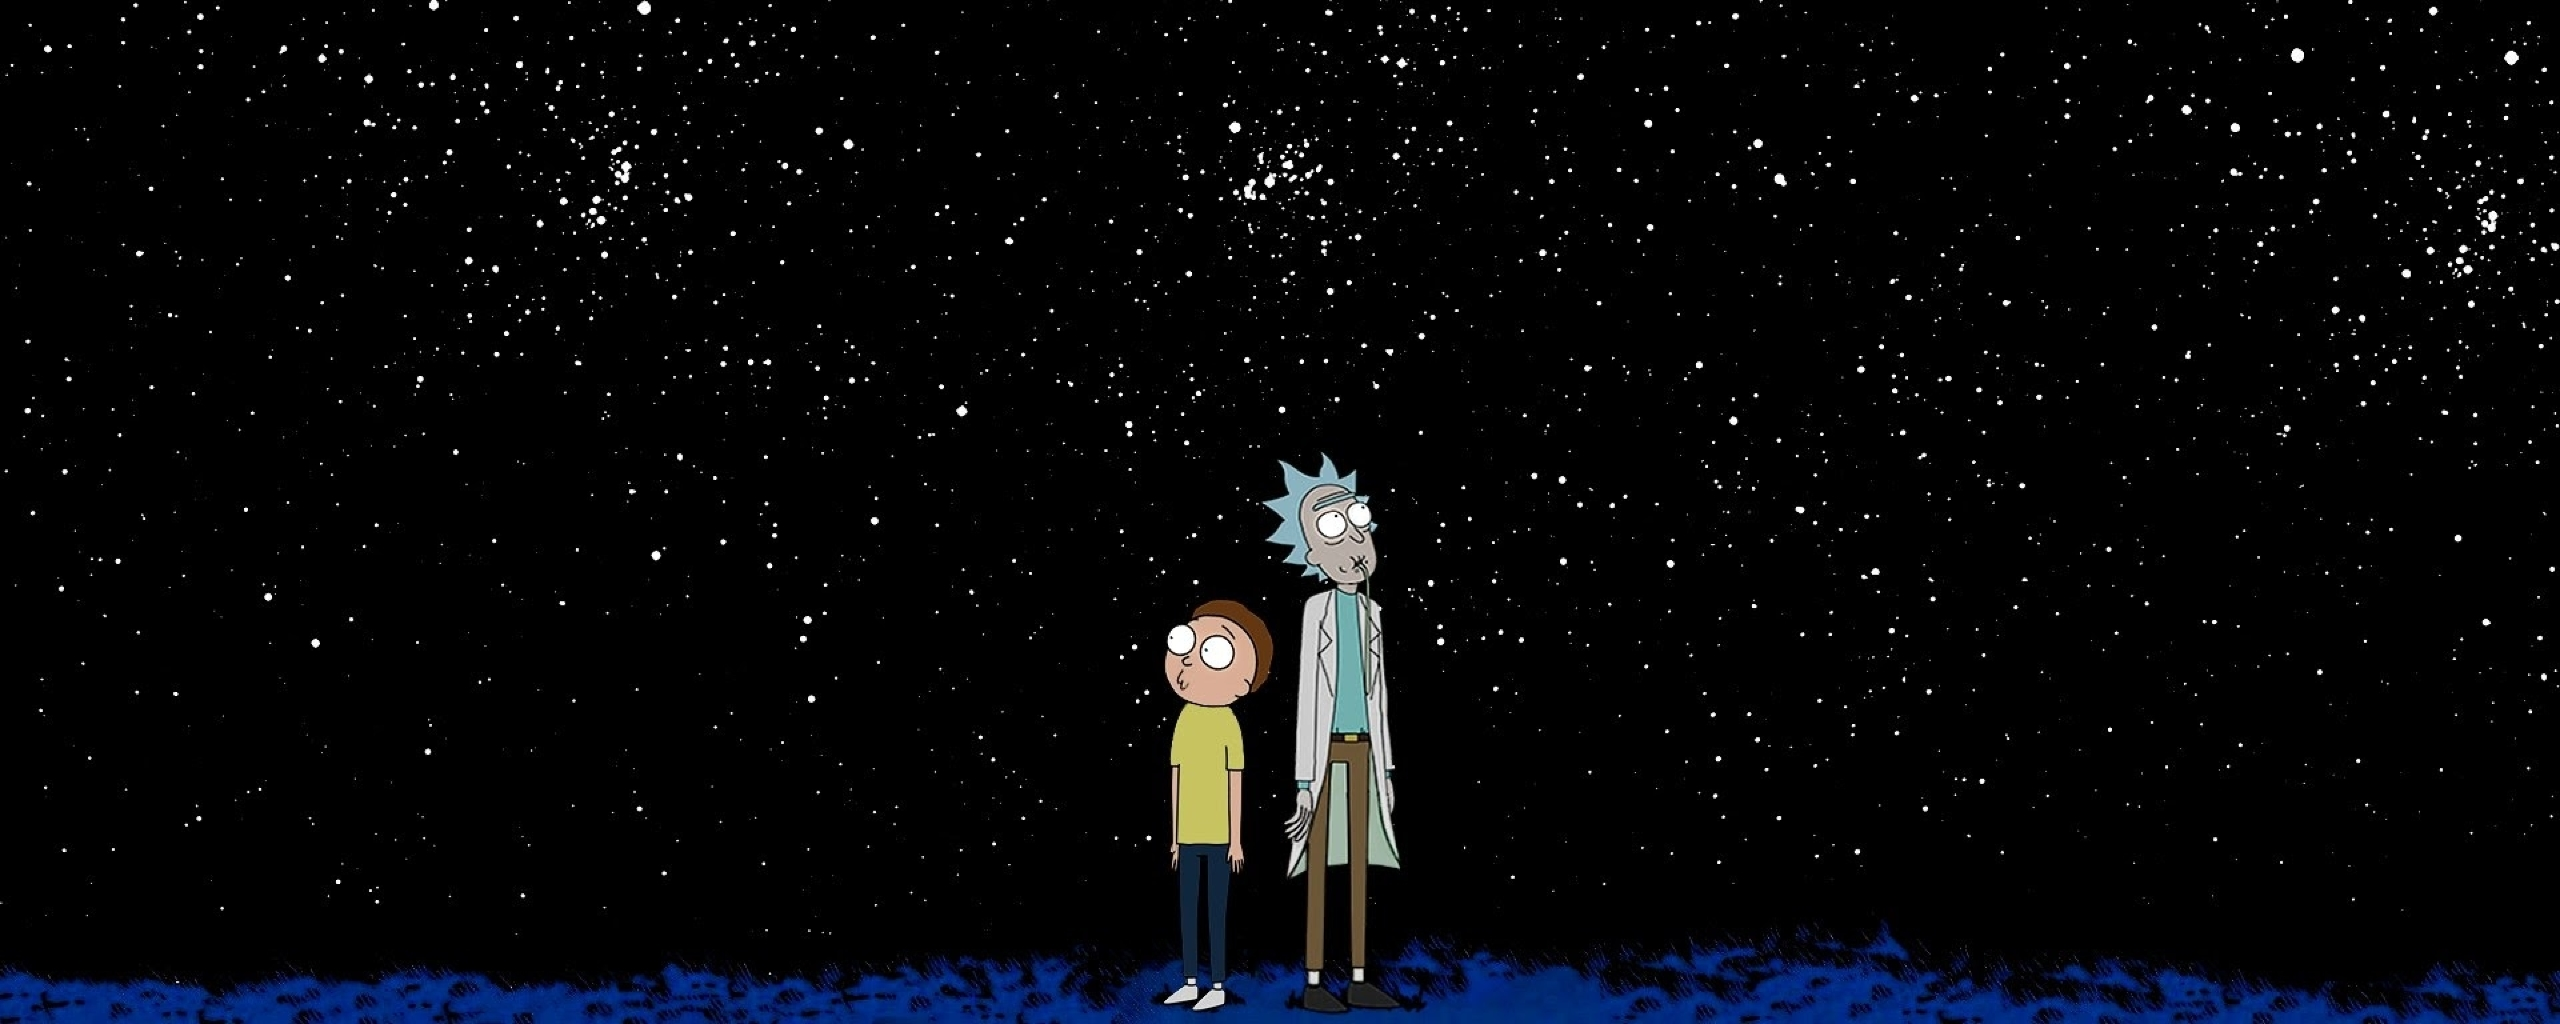 Rick And Morty Space, Full HD Wallpaper